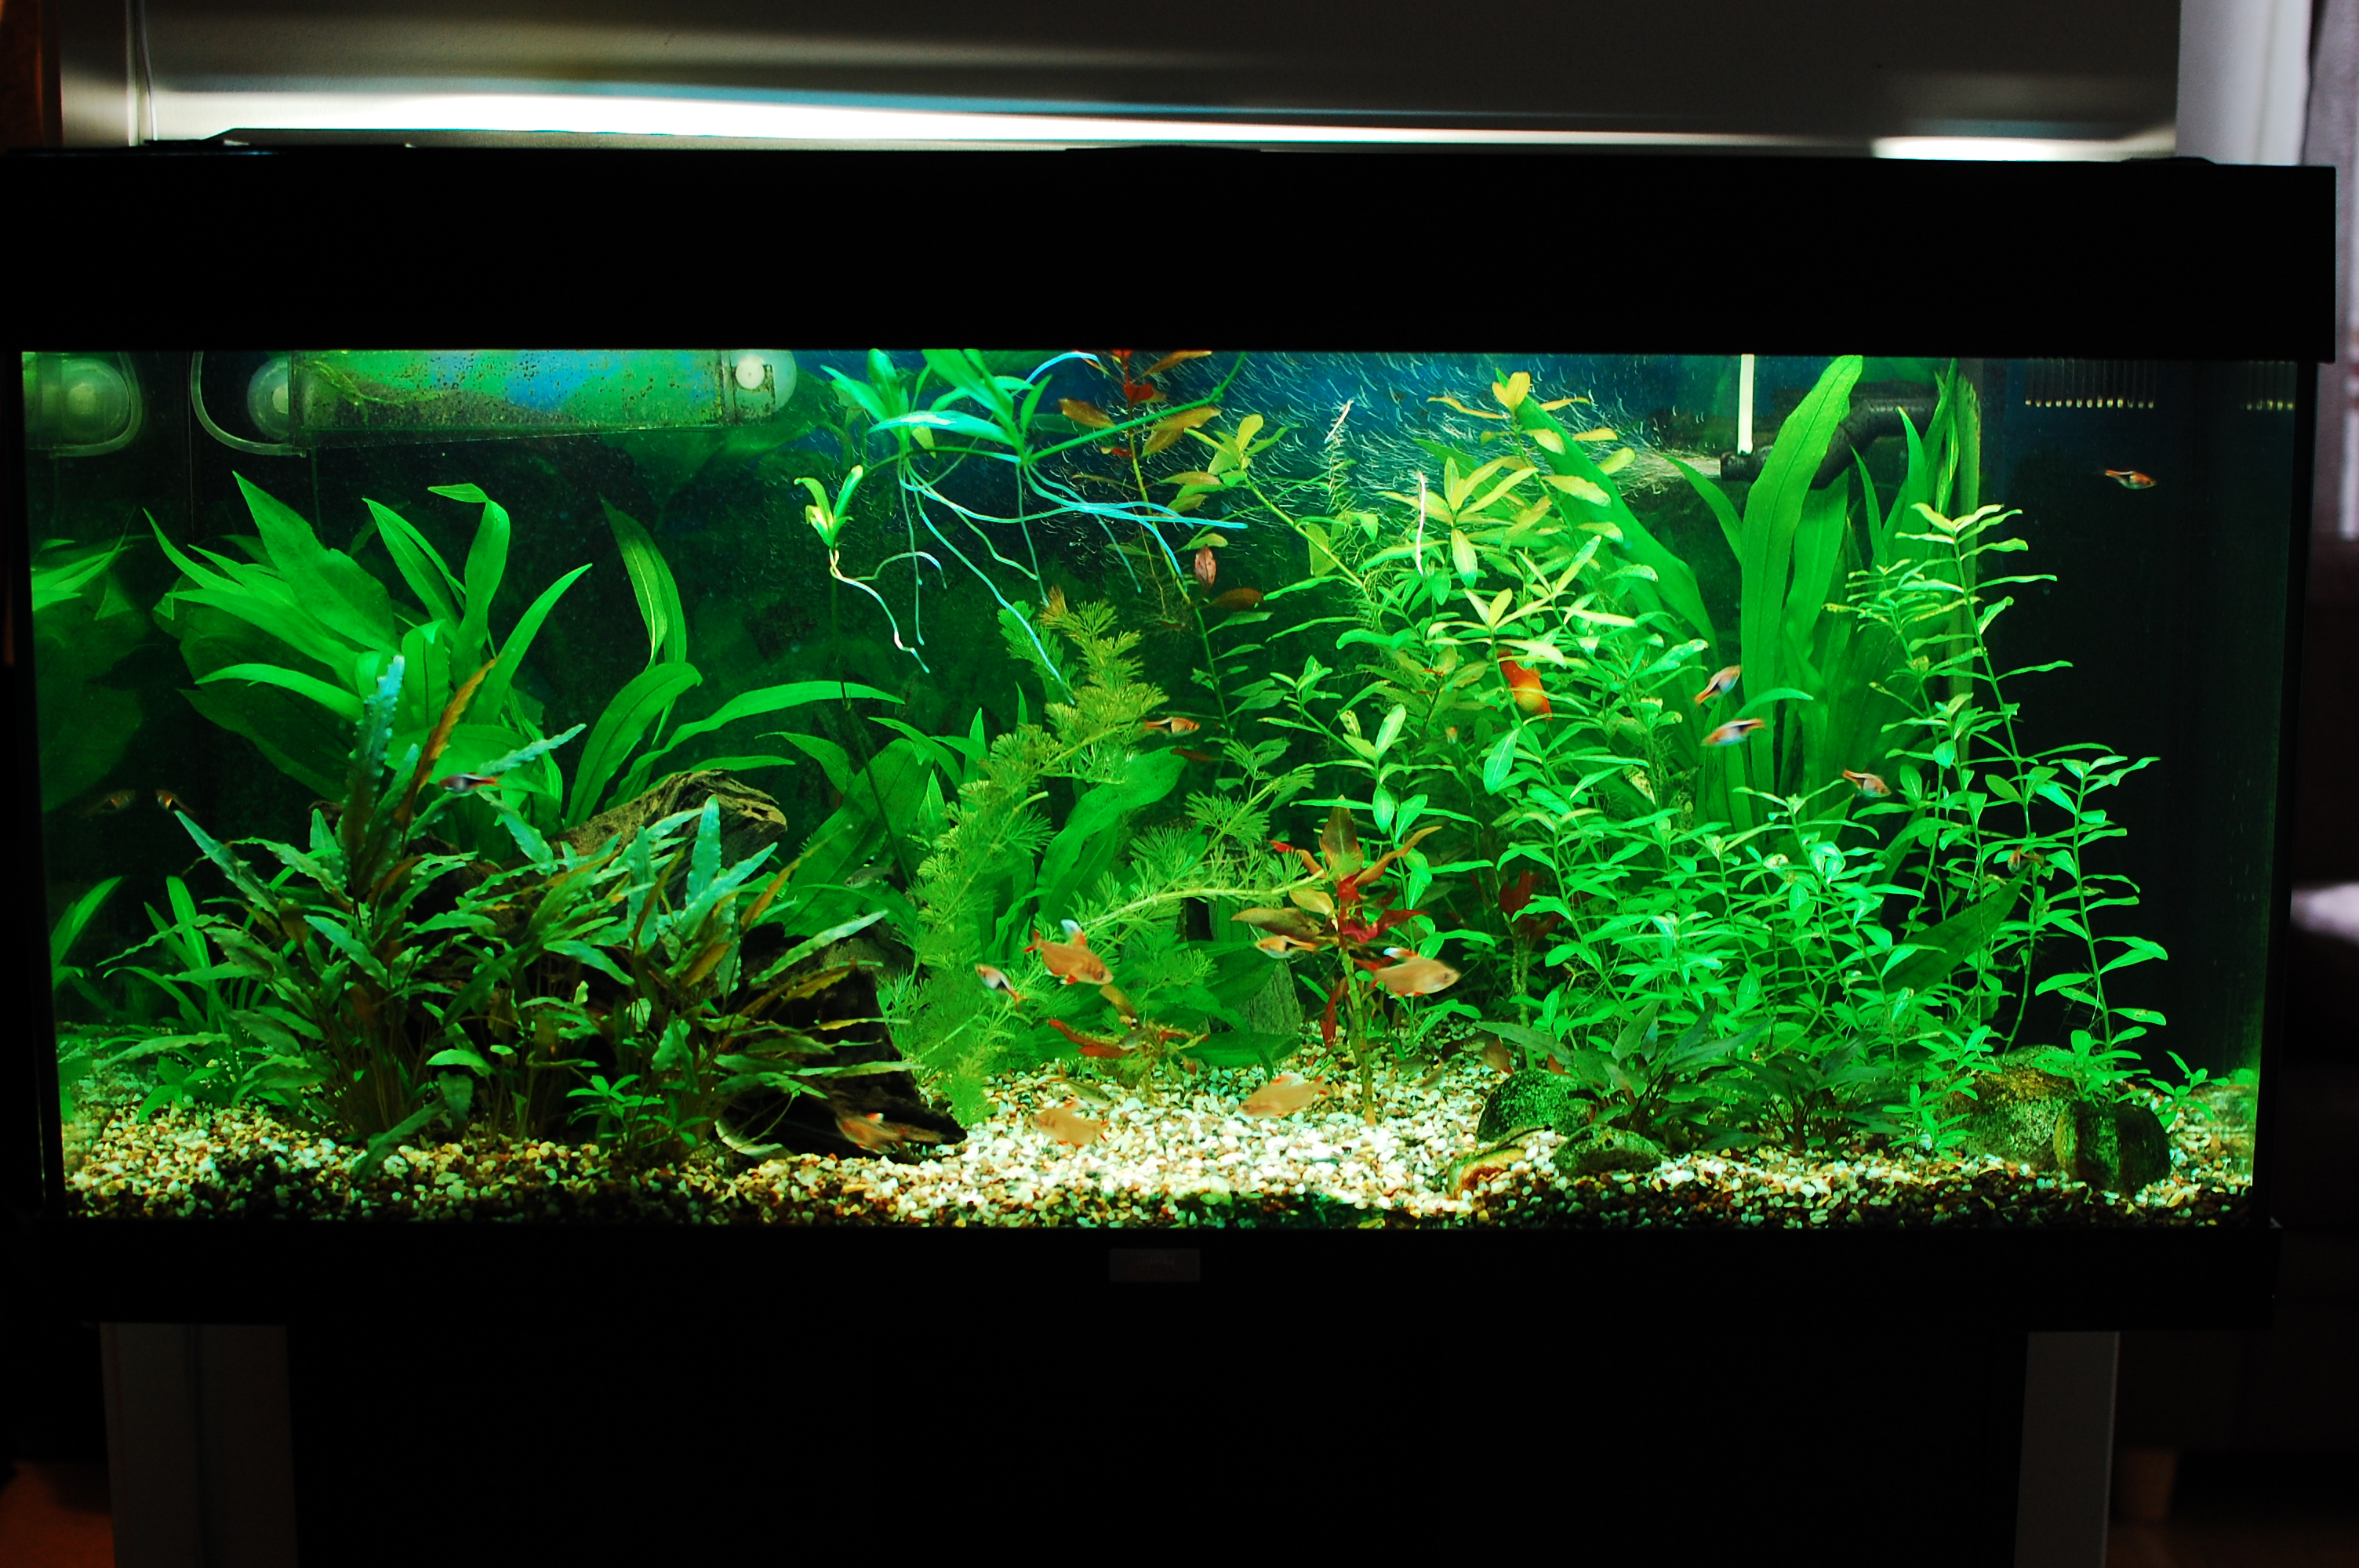 Freshwater Aquarium Plants: plant lighting, freshwater aquarium plants ...